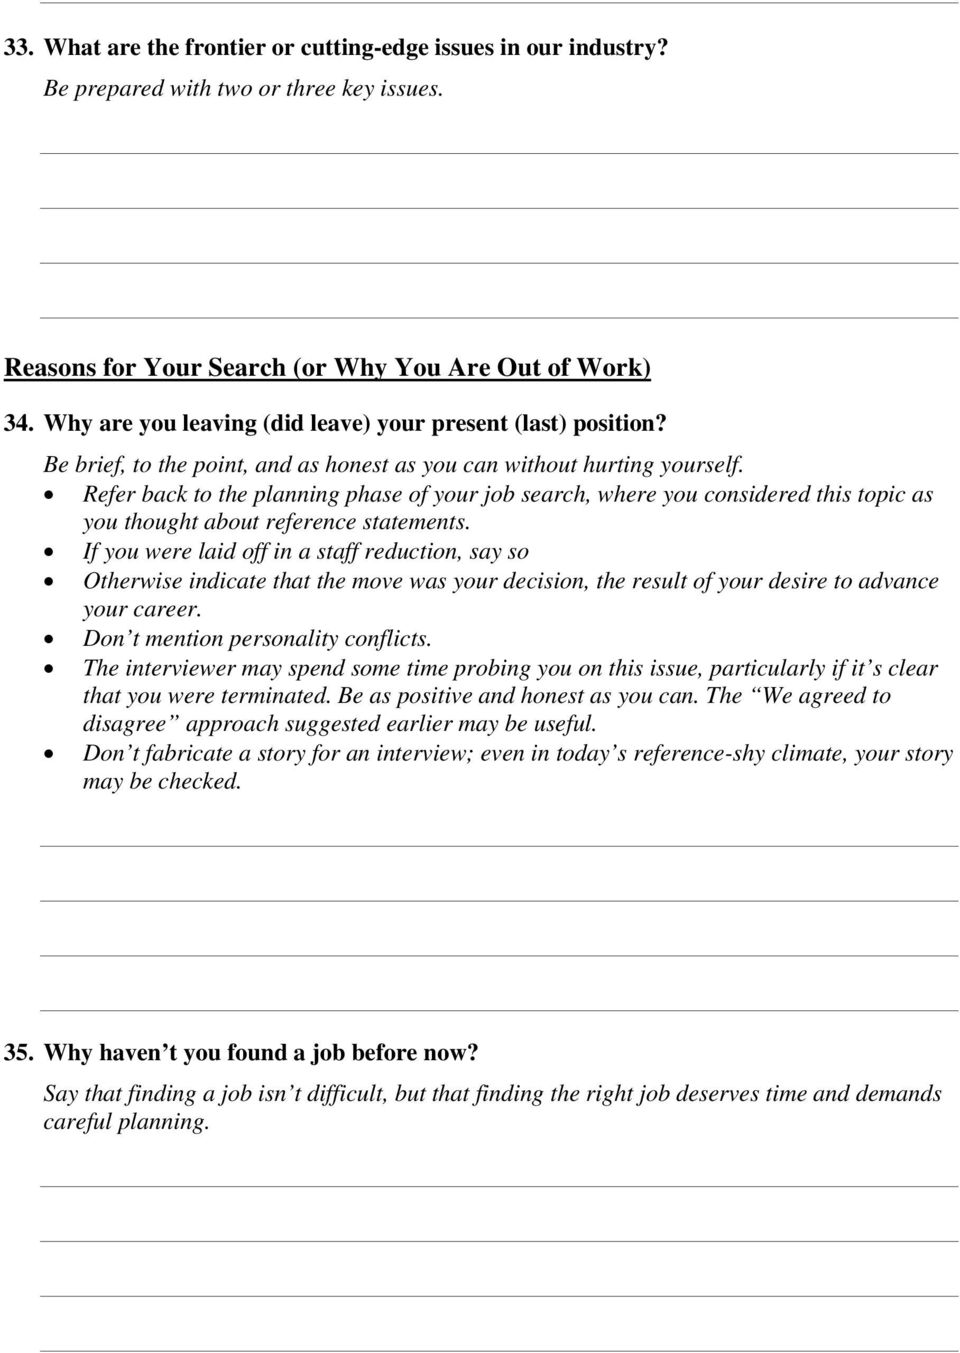 Refer back to the planning phase of your job search, where you considered this topic as you thought about reference statements.